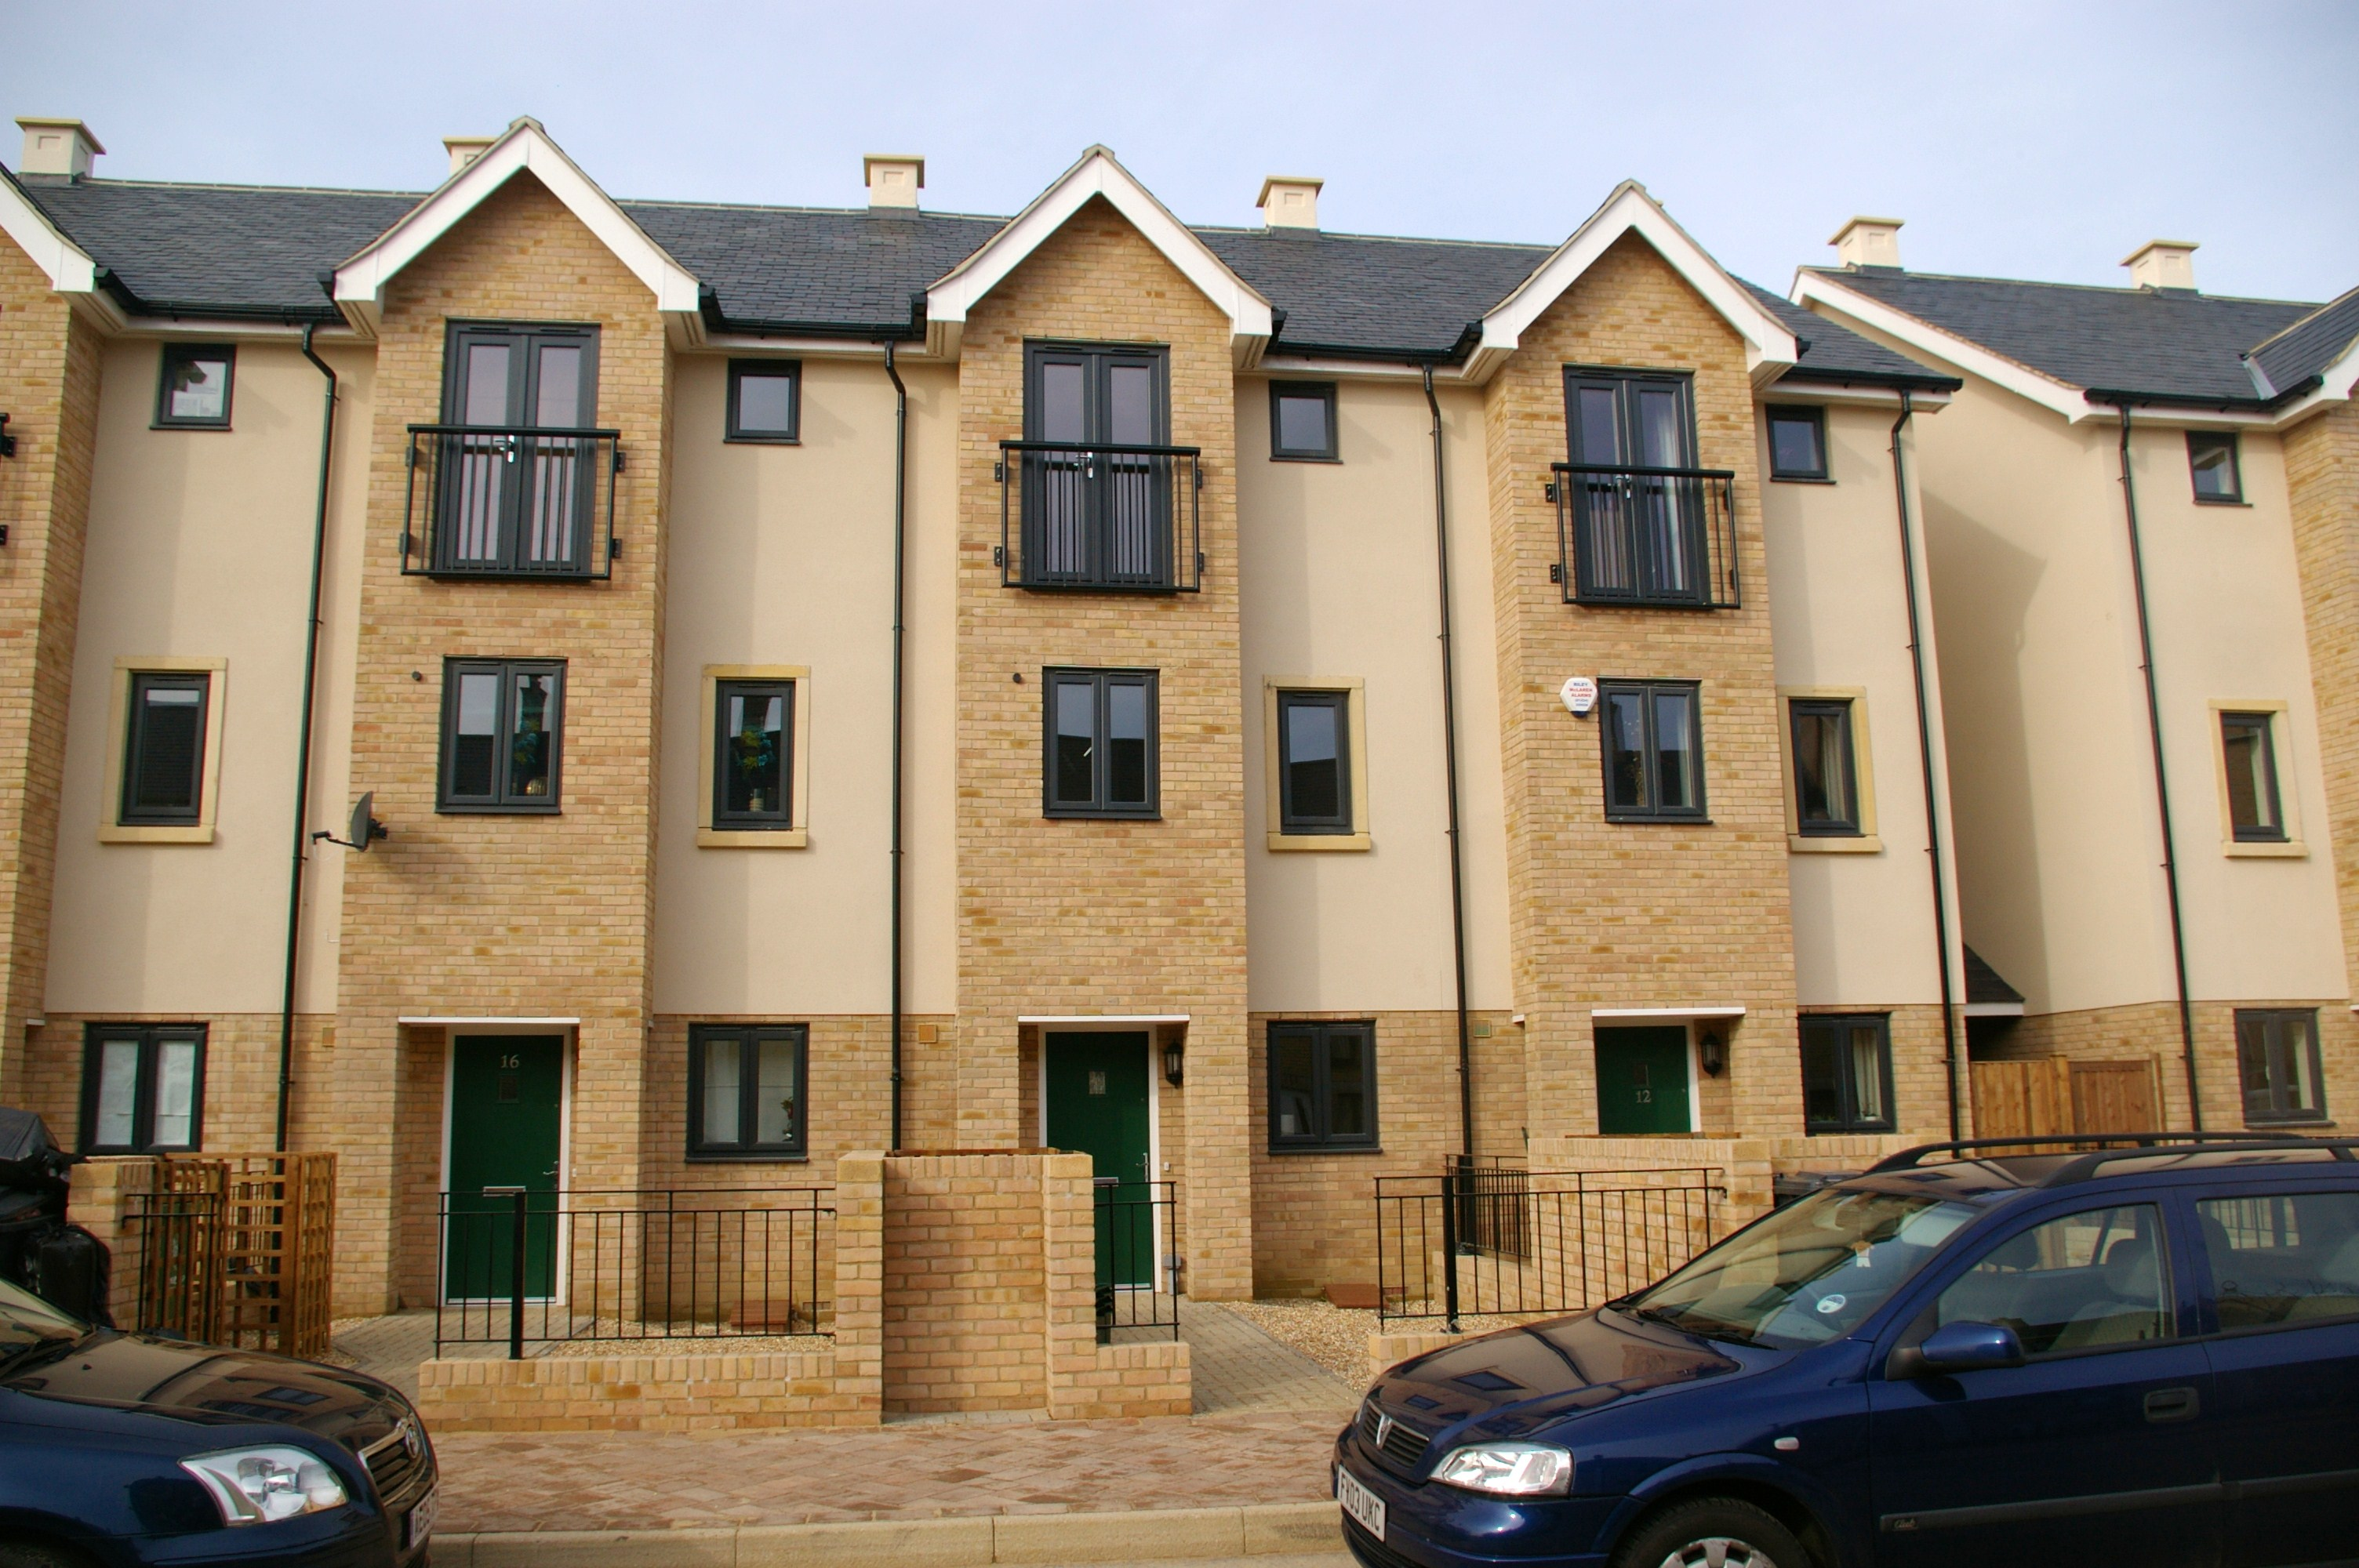 1 bed House Share for rent in Arbury. From Alexander Greens Property Services